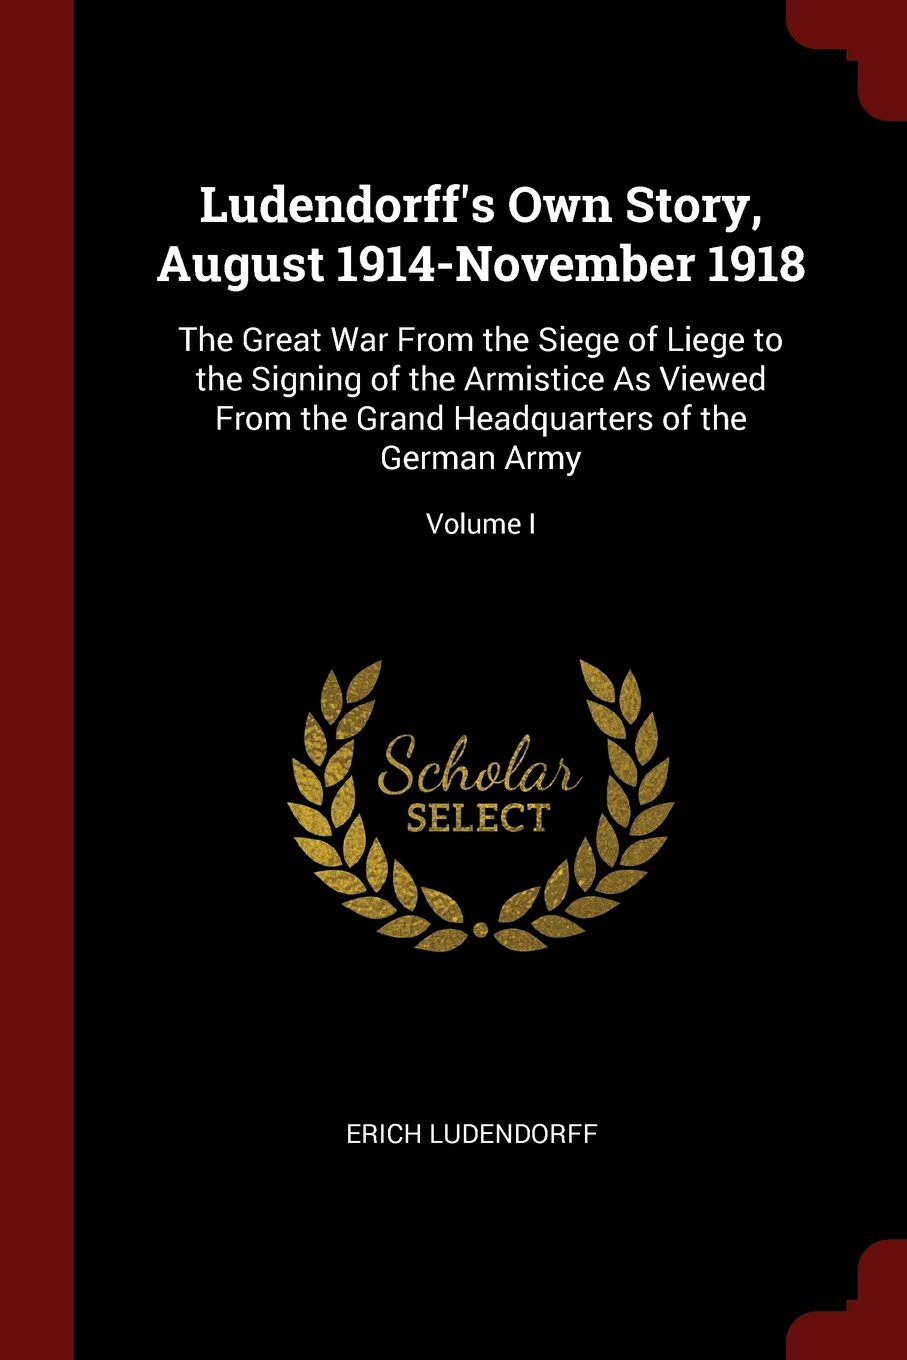 Read Online Ludendorff's Own Story, August 1914-November 1918: The Great War From the Siege of Liege to the Signing of the Armistice As Viewed From the Grand Headquarters of the German Army; Volume I ebook